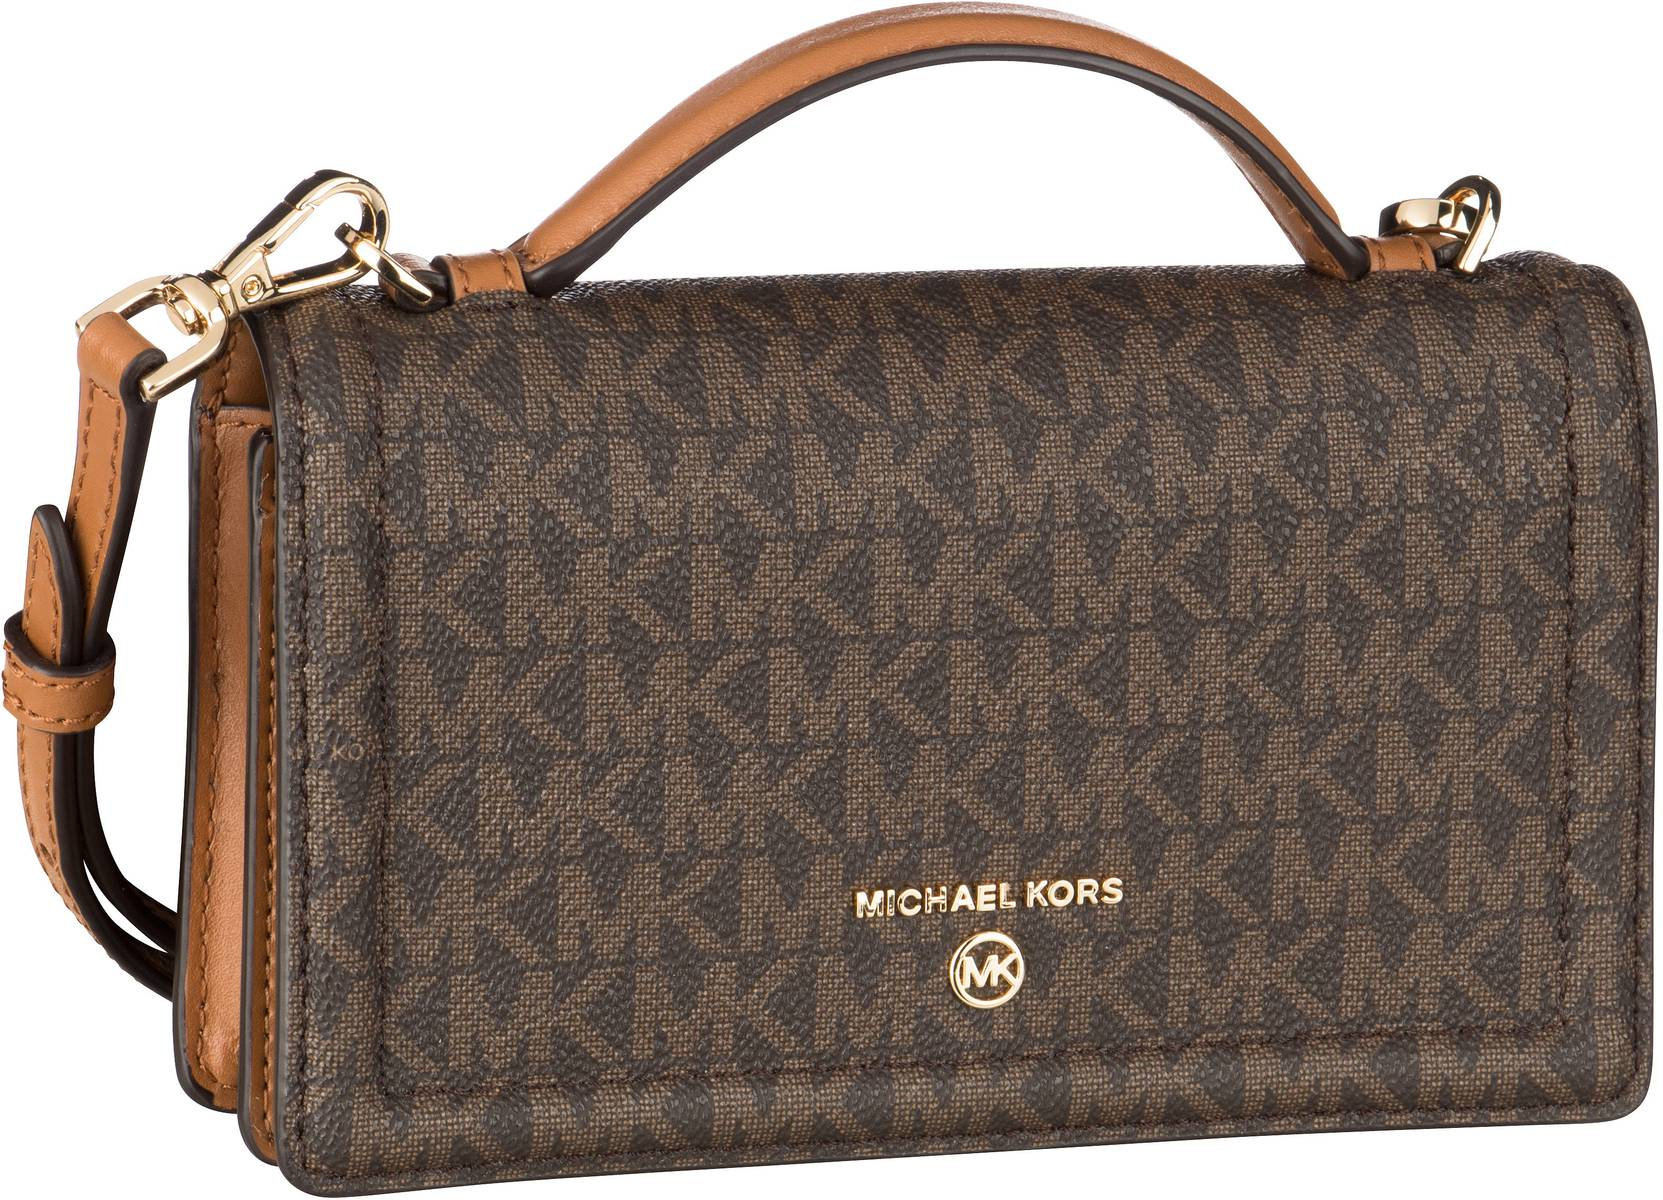 Michael Kors Umhängetasche Jet Set Charm TH Phone Xbody MK Signature Brown/Acorn